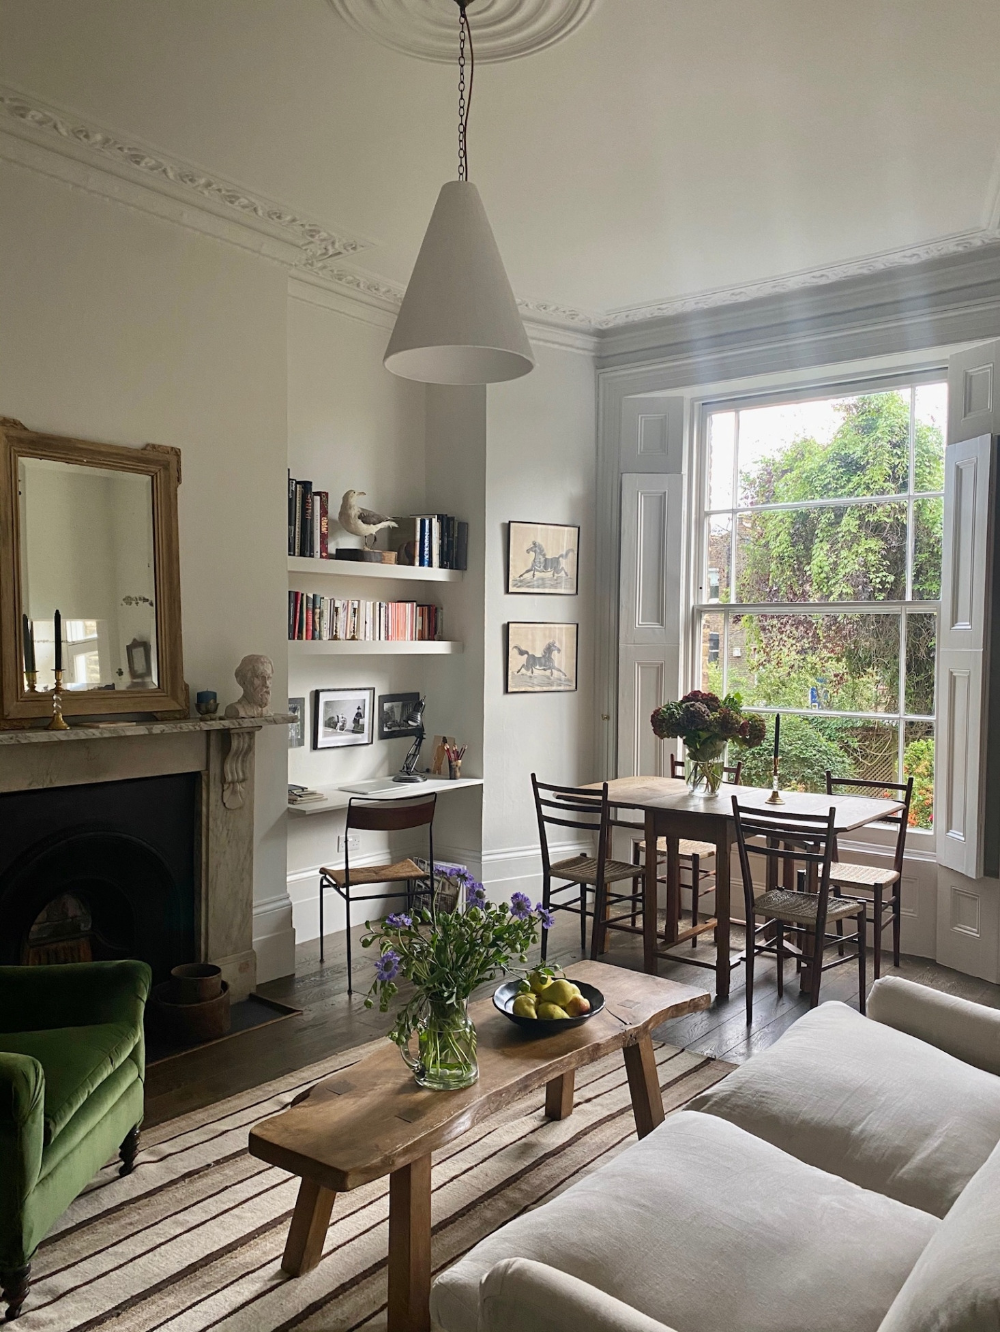 Respect for the Old: In a Tiny London Flat, Antiques, Vintage Finds, and Charm to Spare